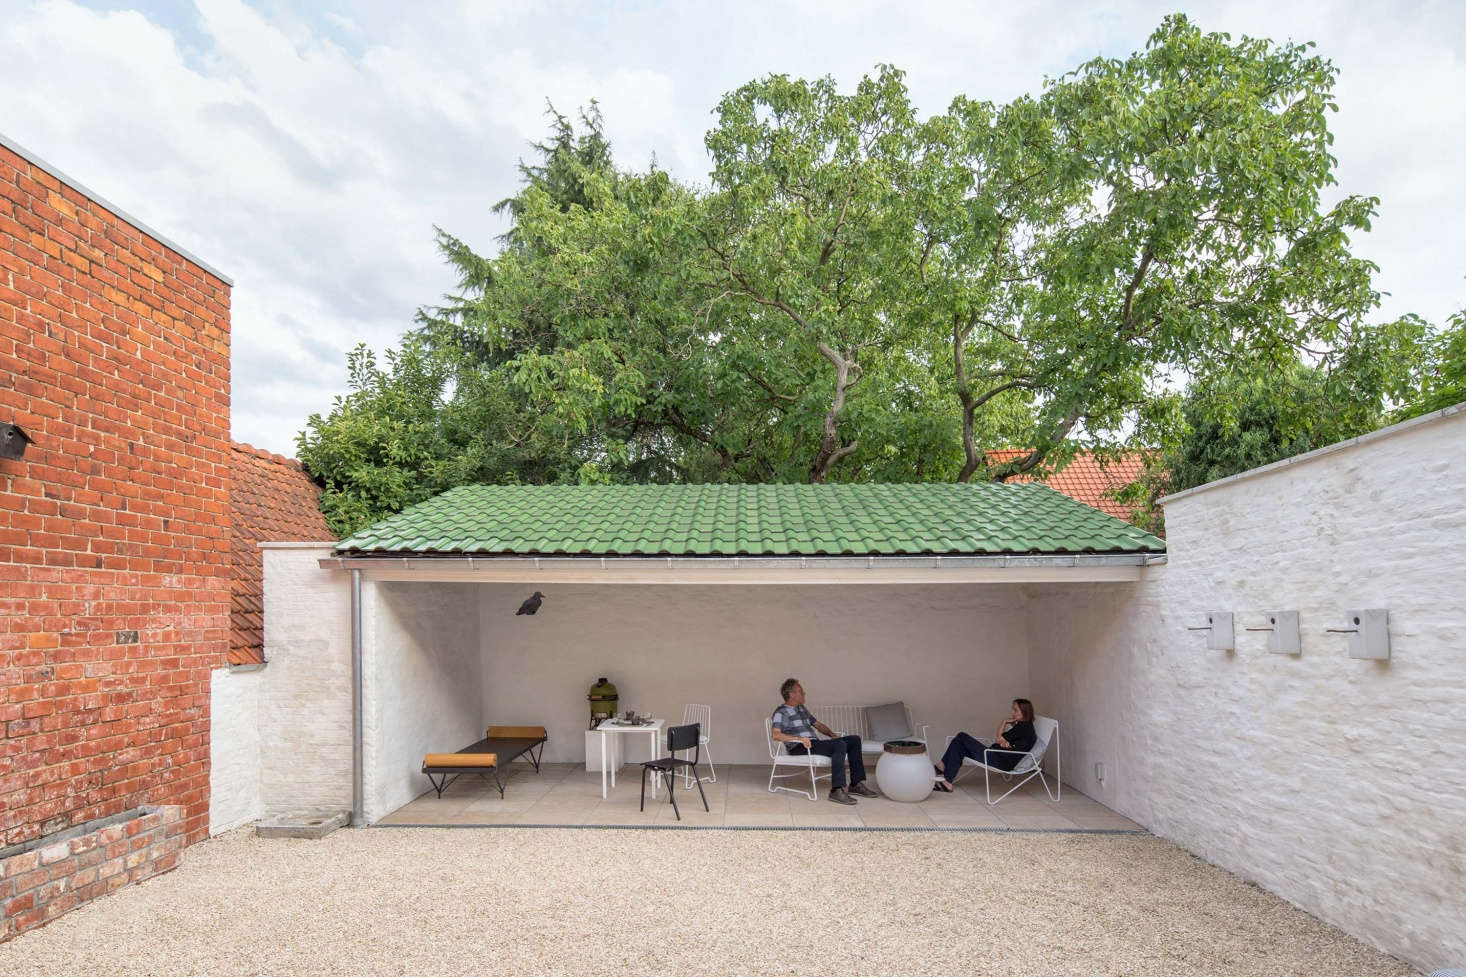 The owners of the Good Repose house relax in the semi-covered courtyard. (For more on the courtyard design see our post on Gardenista.)